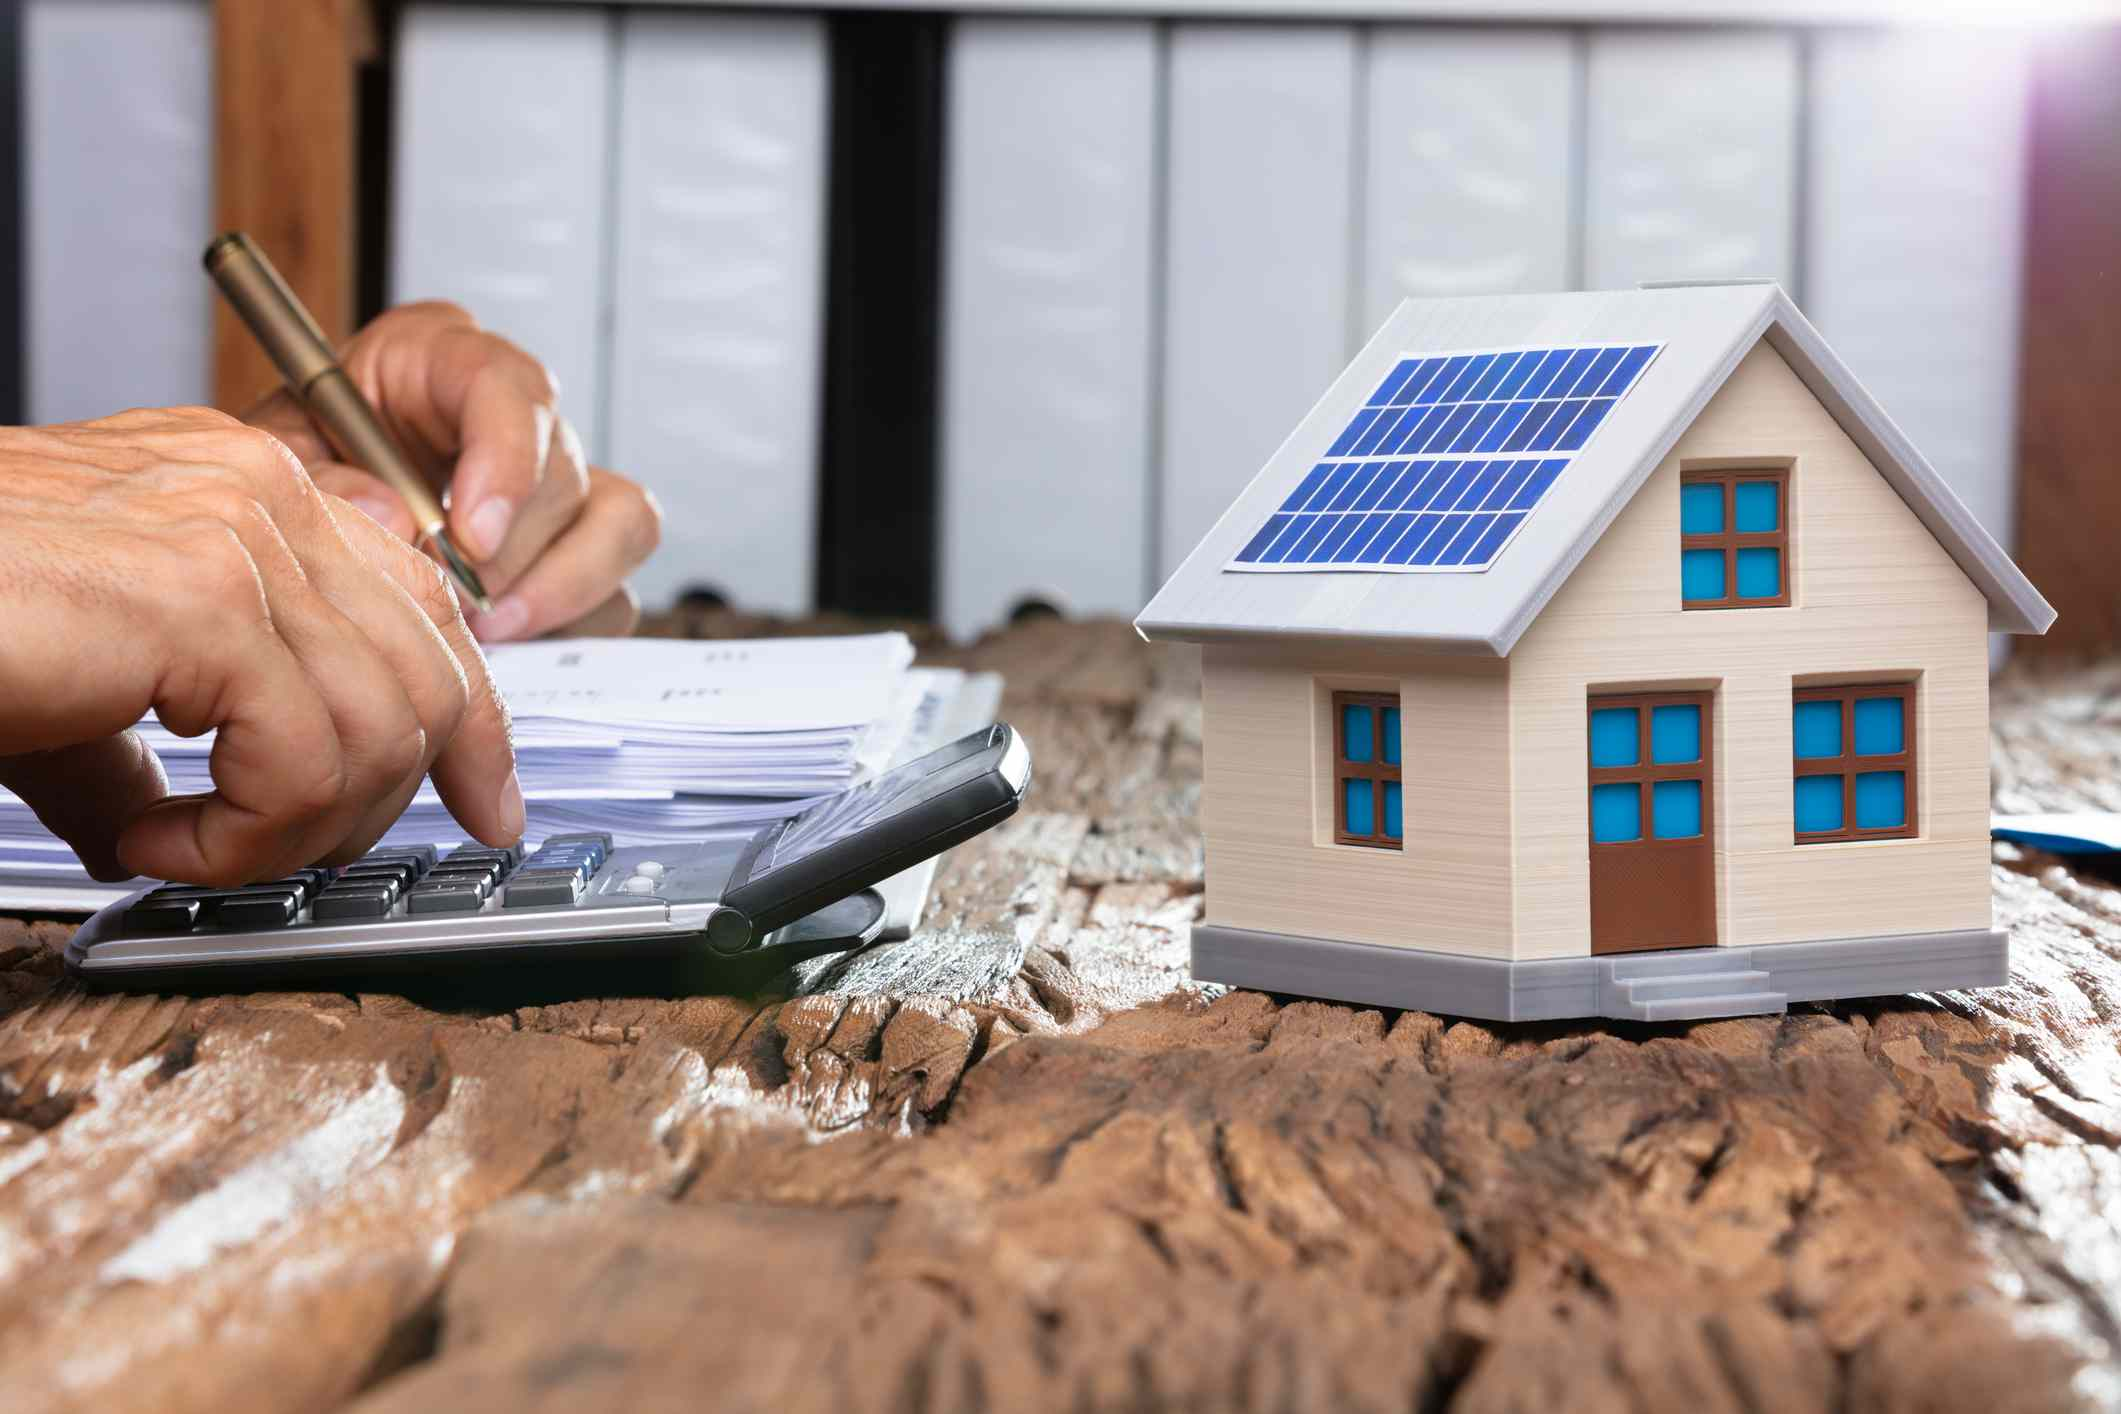 Person using a calculator next to a model solar home.